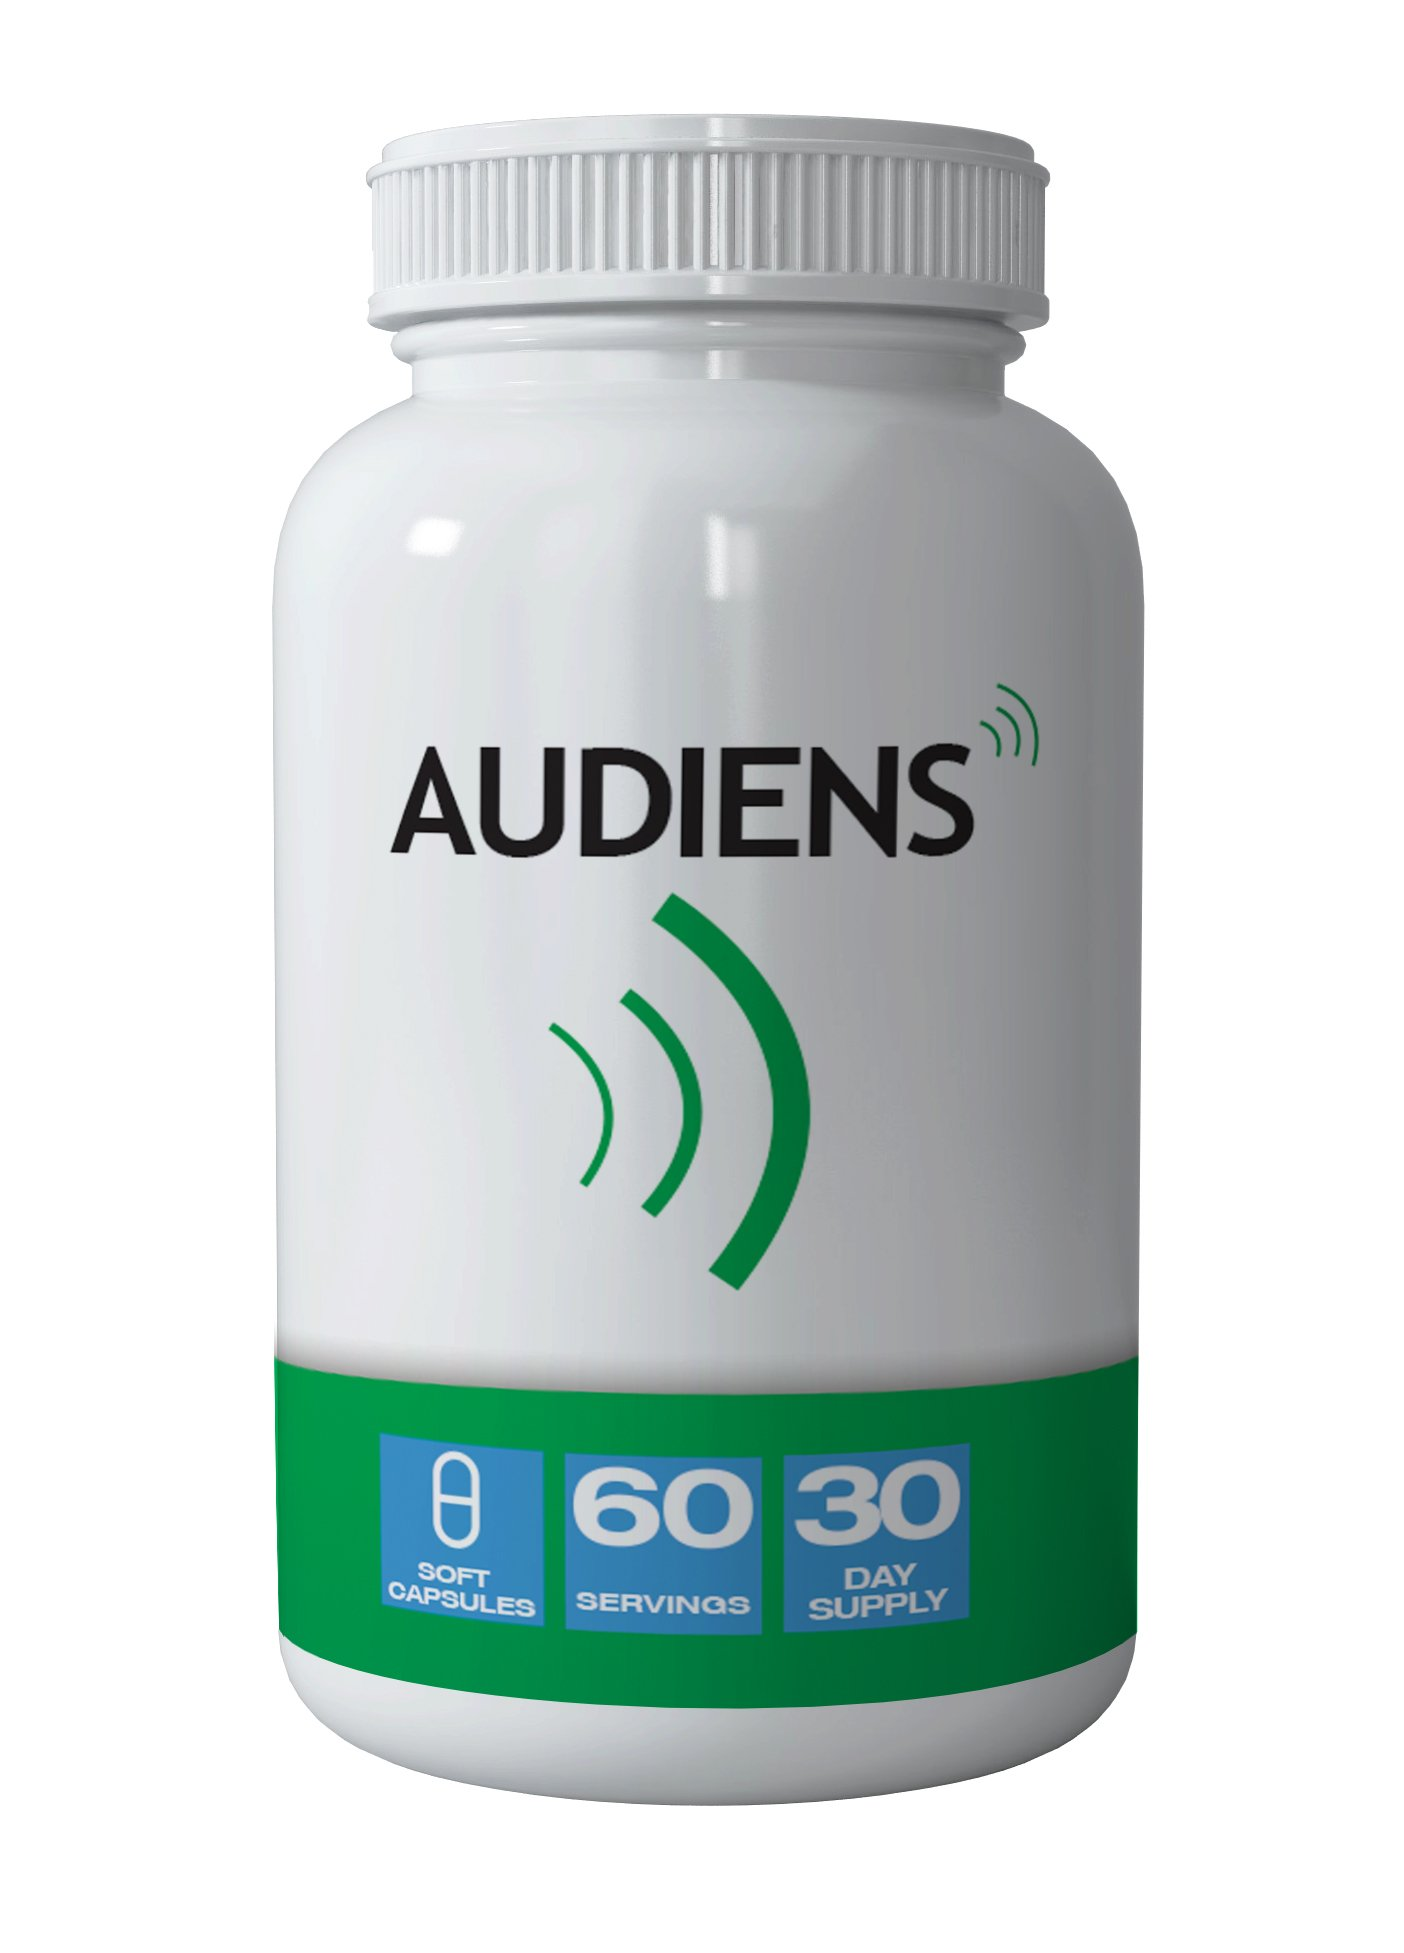 The Audiens Tinnitus Pill - Natural Remedy for Tinnitus Symptoms